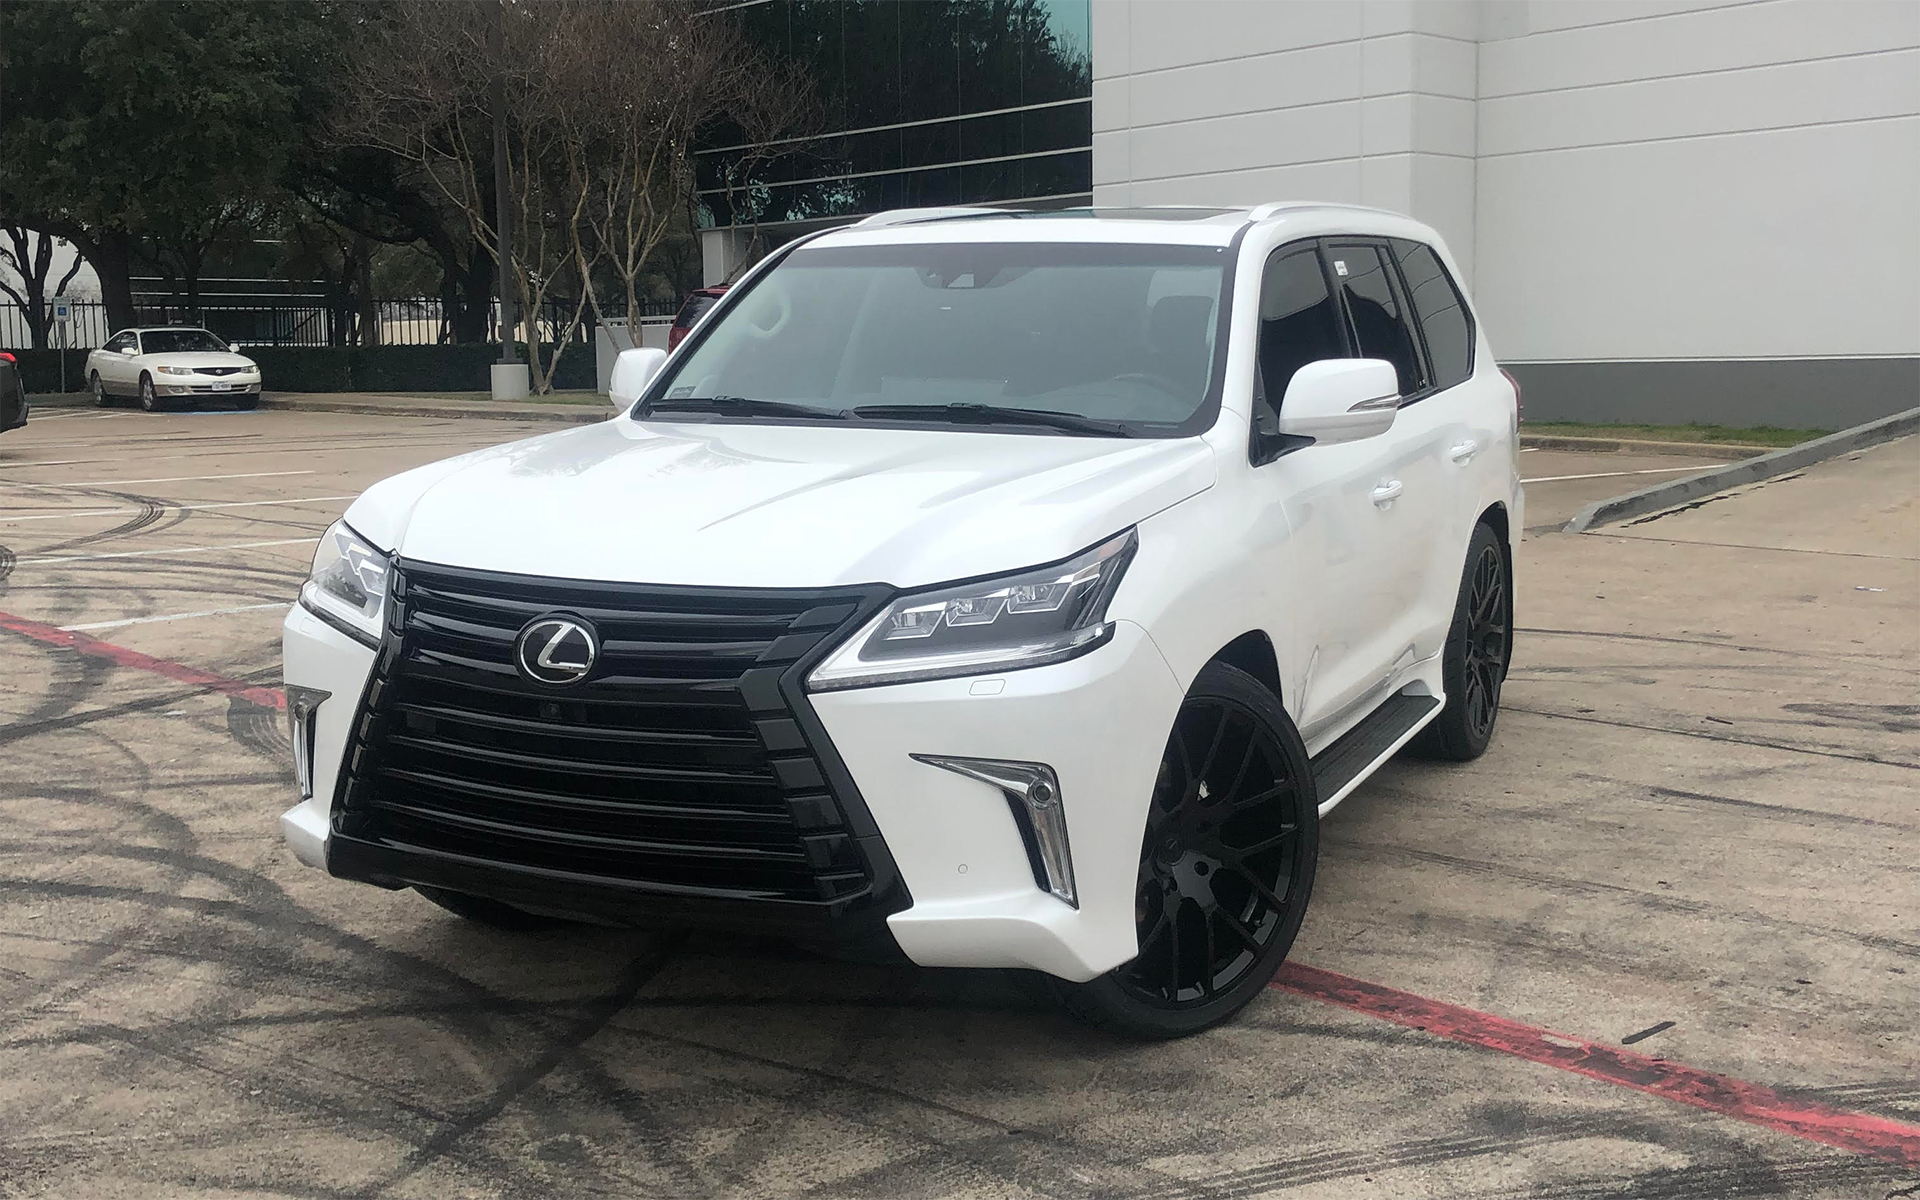 2019 Lexus Lx570 Body Color Trim And Black Out With 24 Black Rhino Kunene With 285 35 24 Toyo S 2019 Cvdauto Lexus Lx570 Lexus Lx570 Lexus Gx 460 Lexus Gx